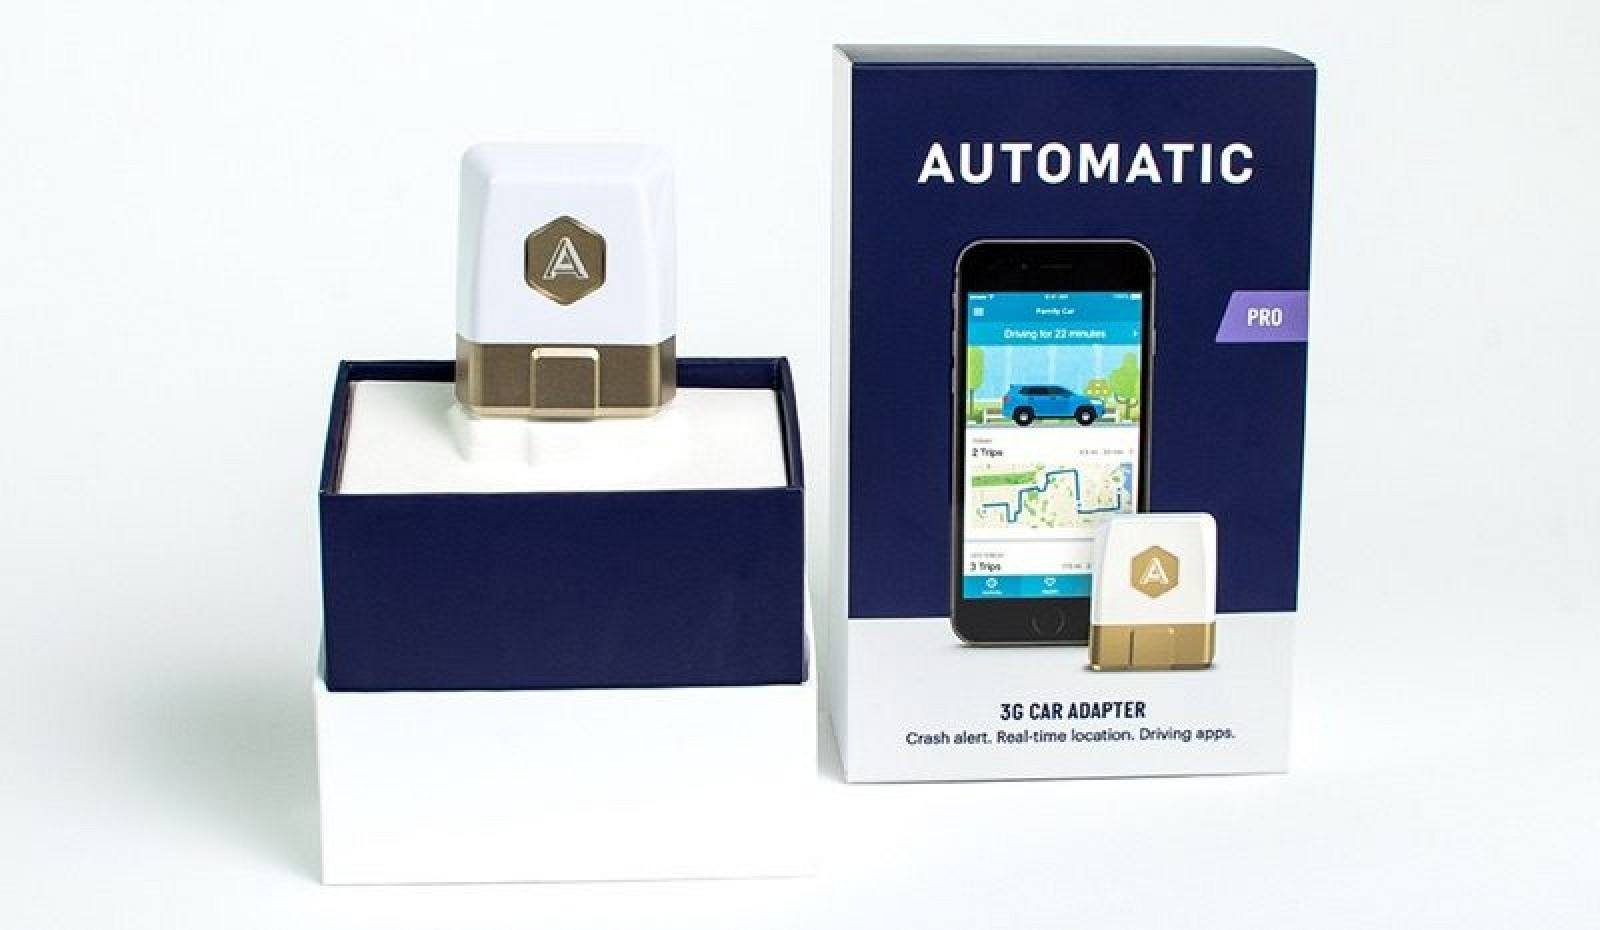 automaticpropackaging-800x465